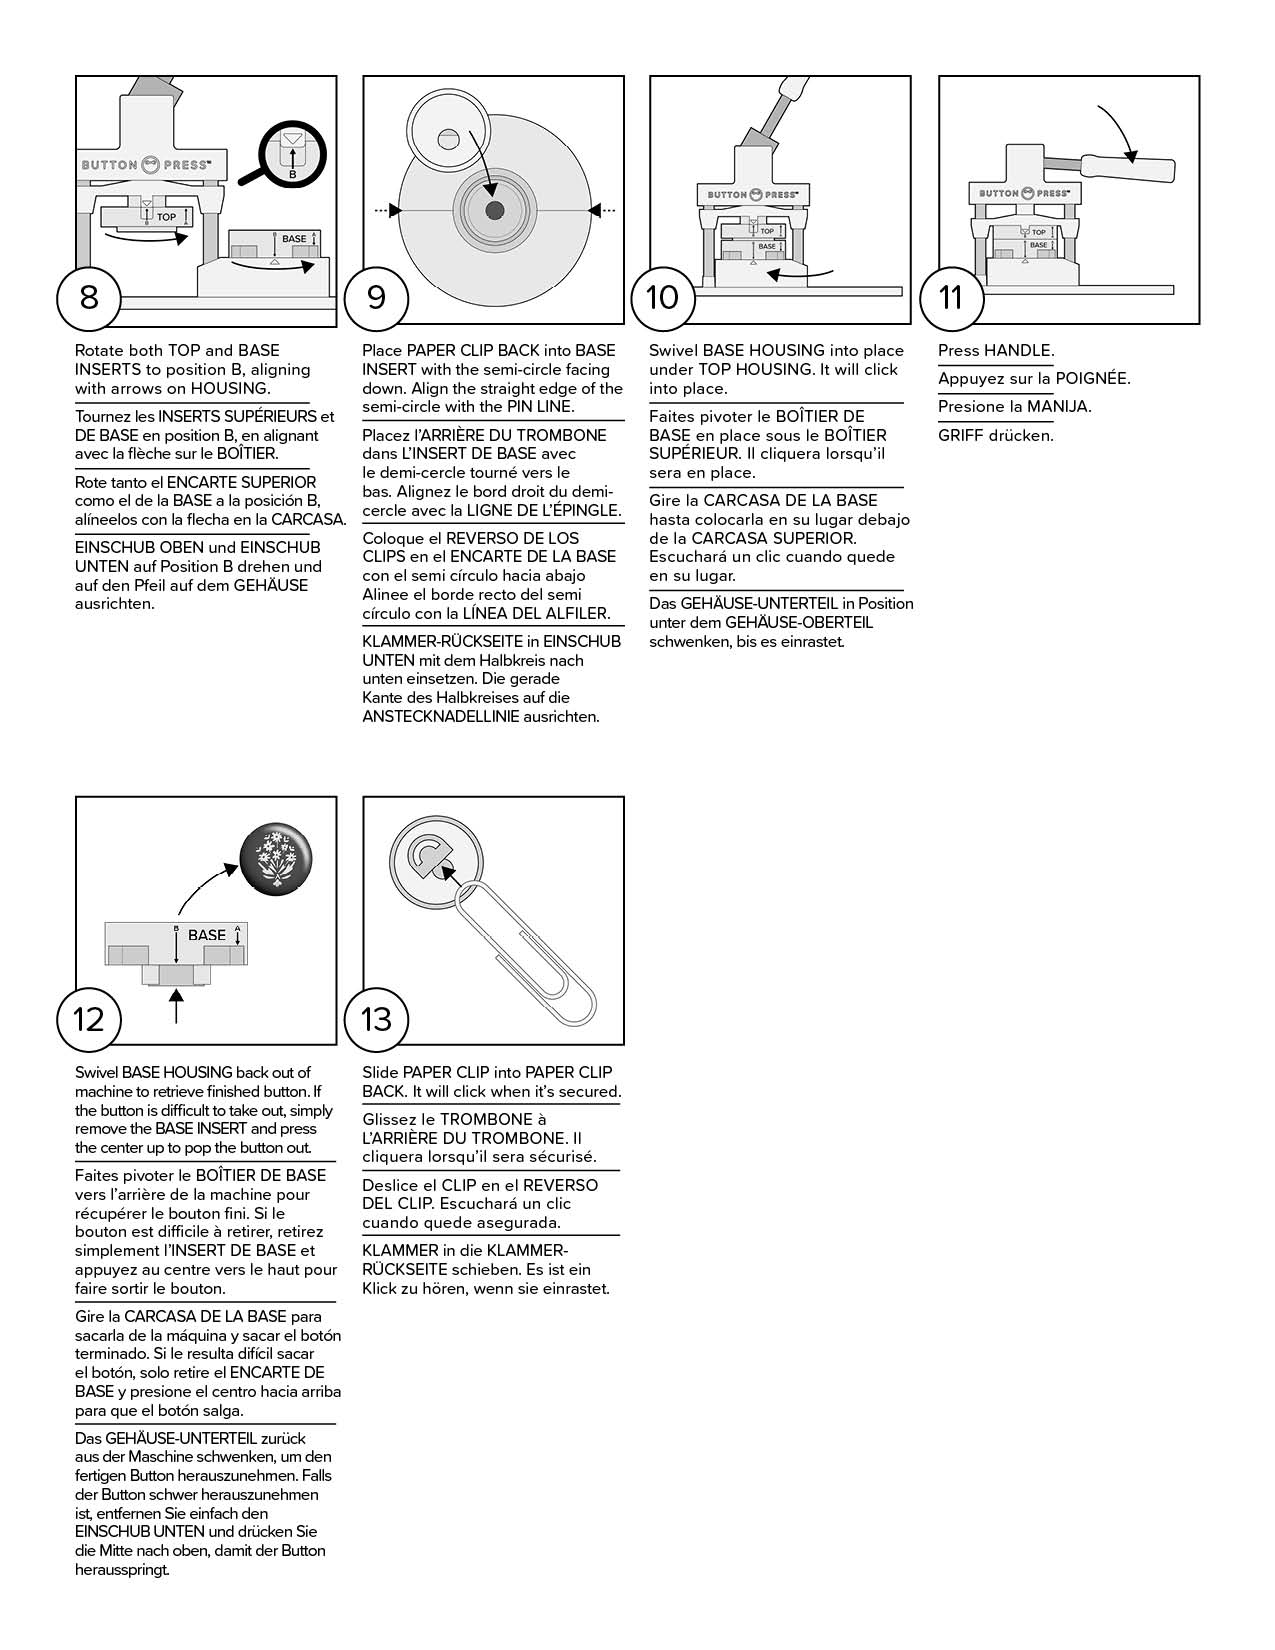 661100_WR_ButtonPress_PaperClipKit_Instructions2